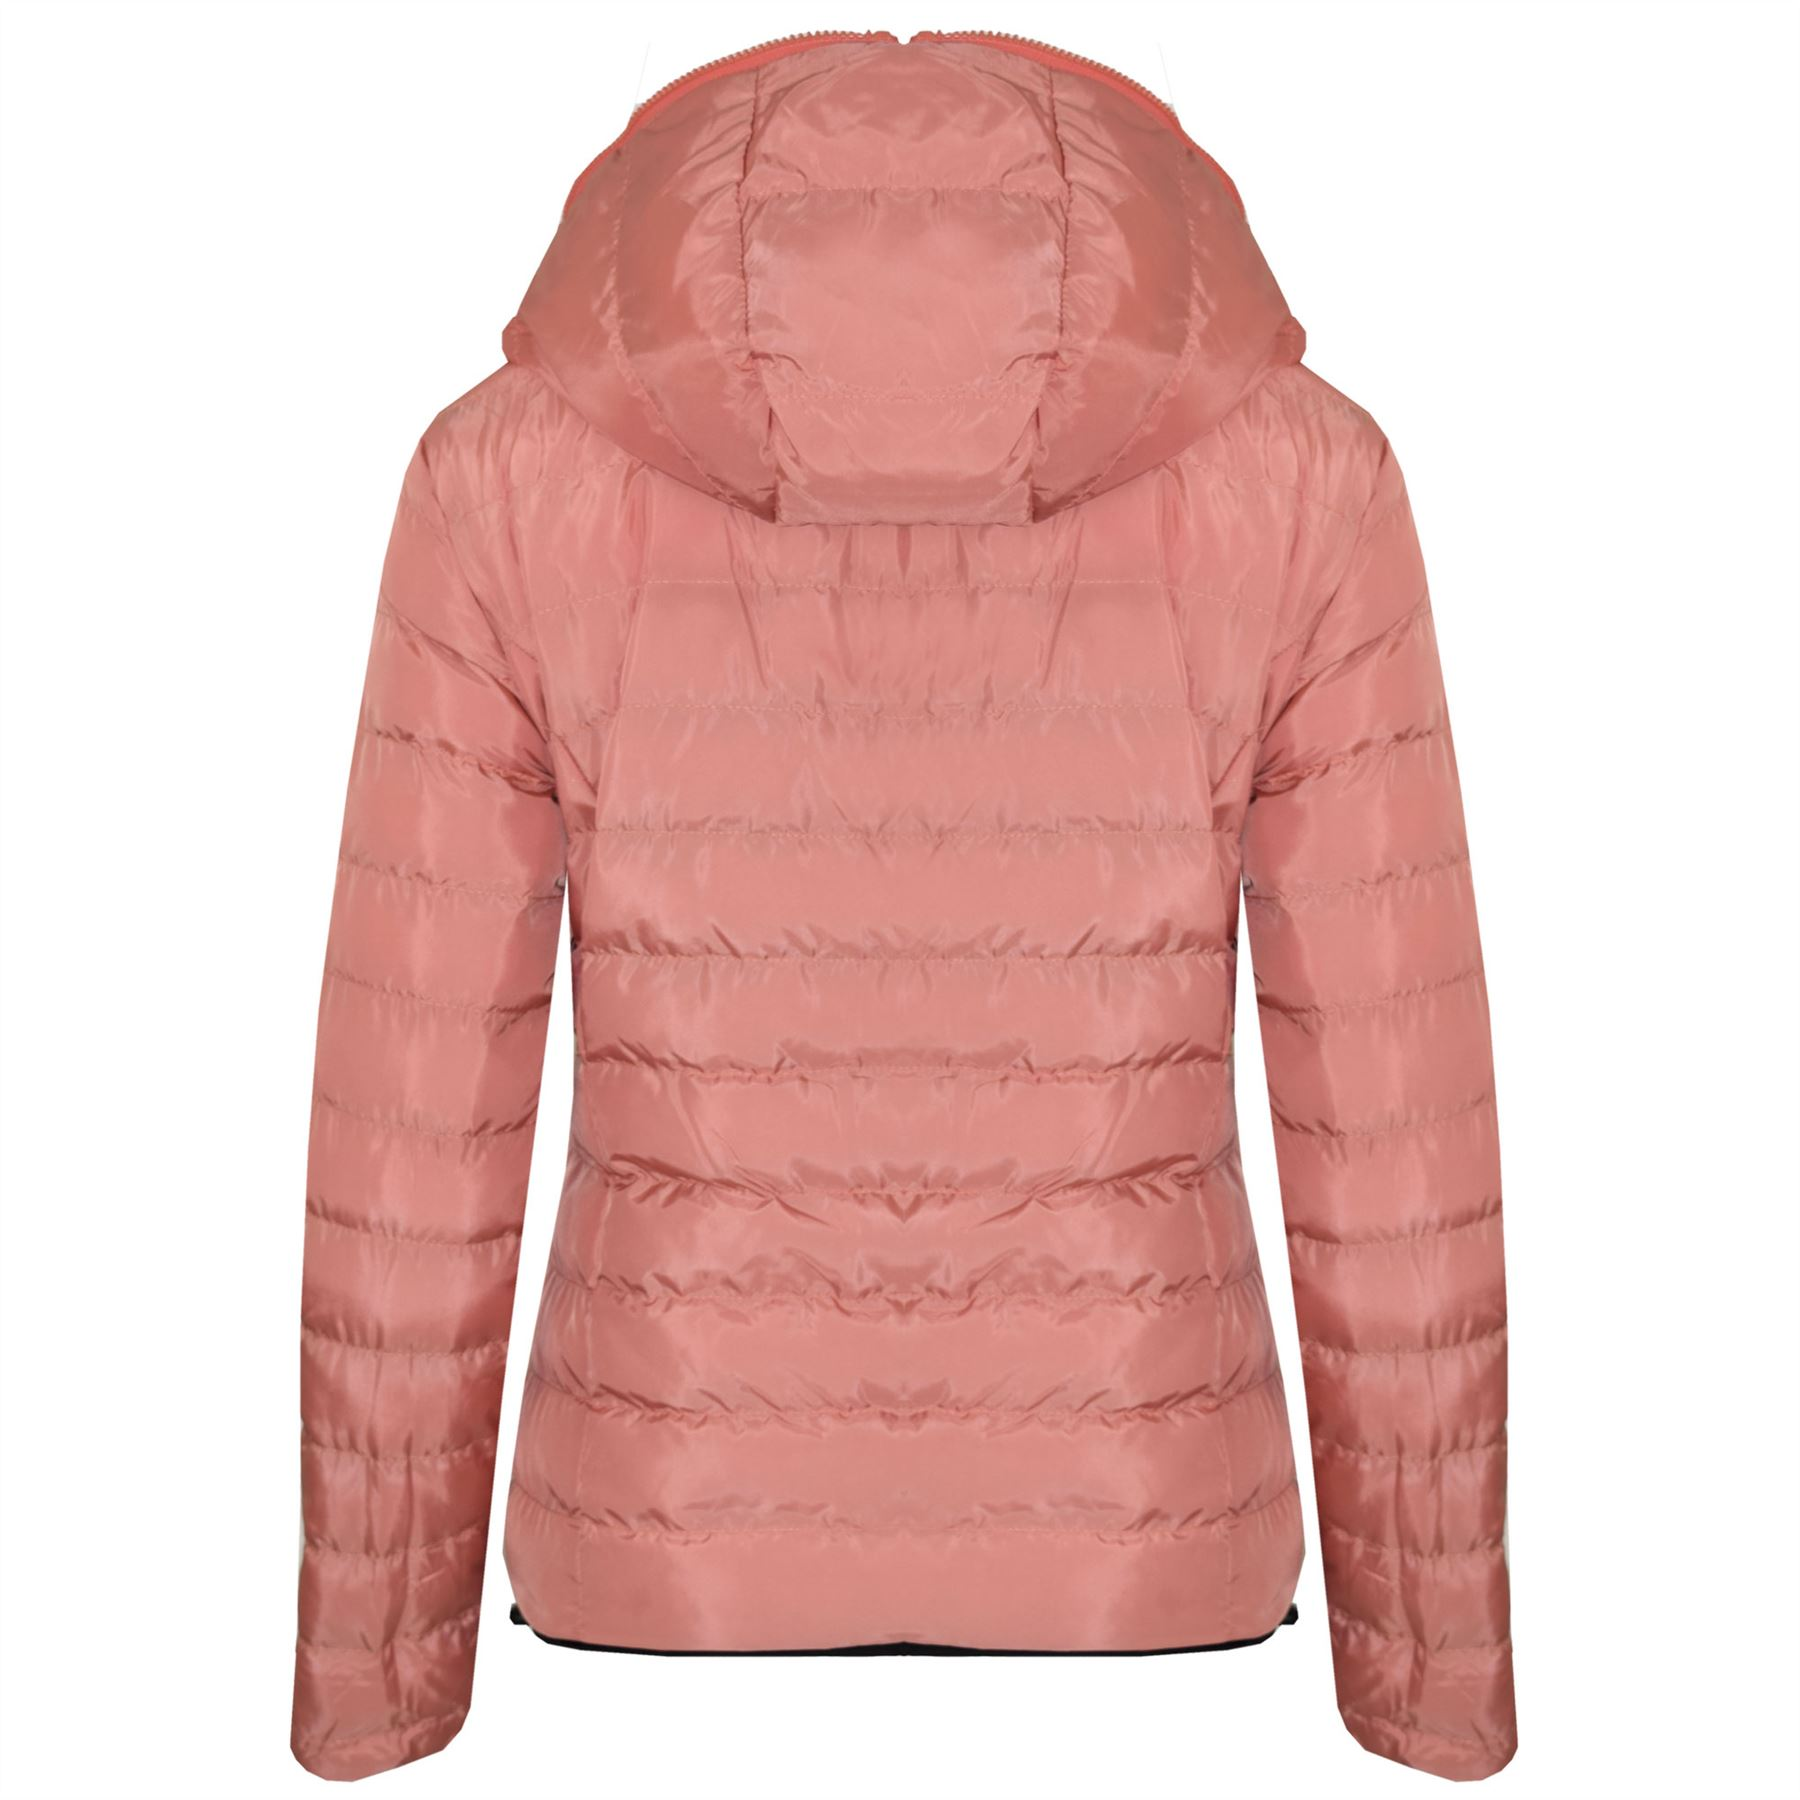 New-Womens-Hooded-Reversible-Puffa-Zip-Up-Quilted-Padded-Coat-Jacket thumbnail 3